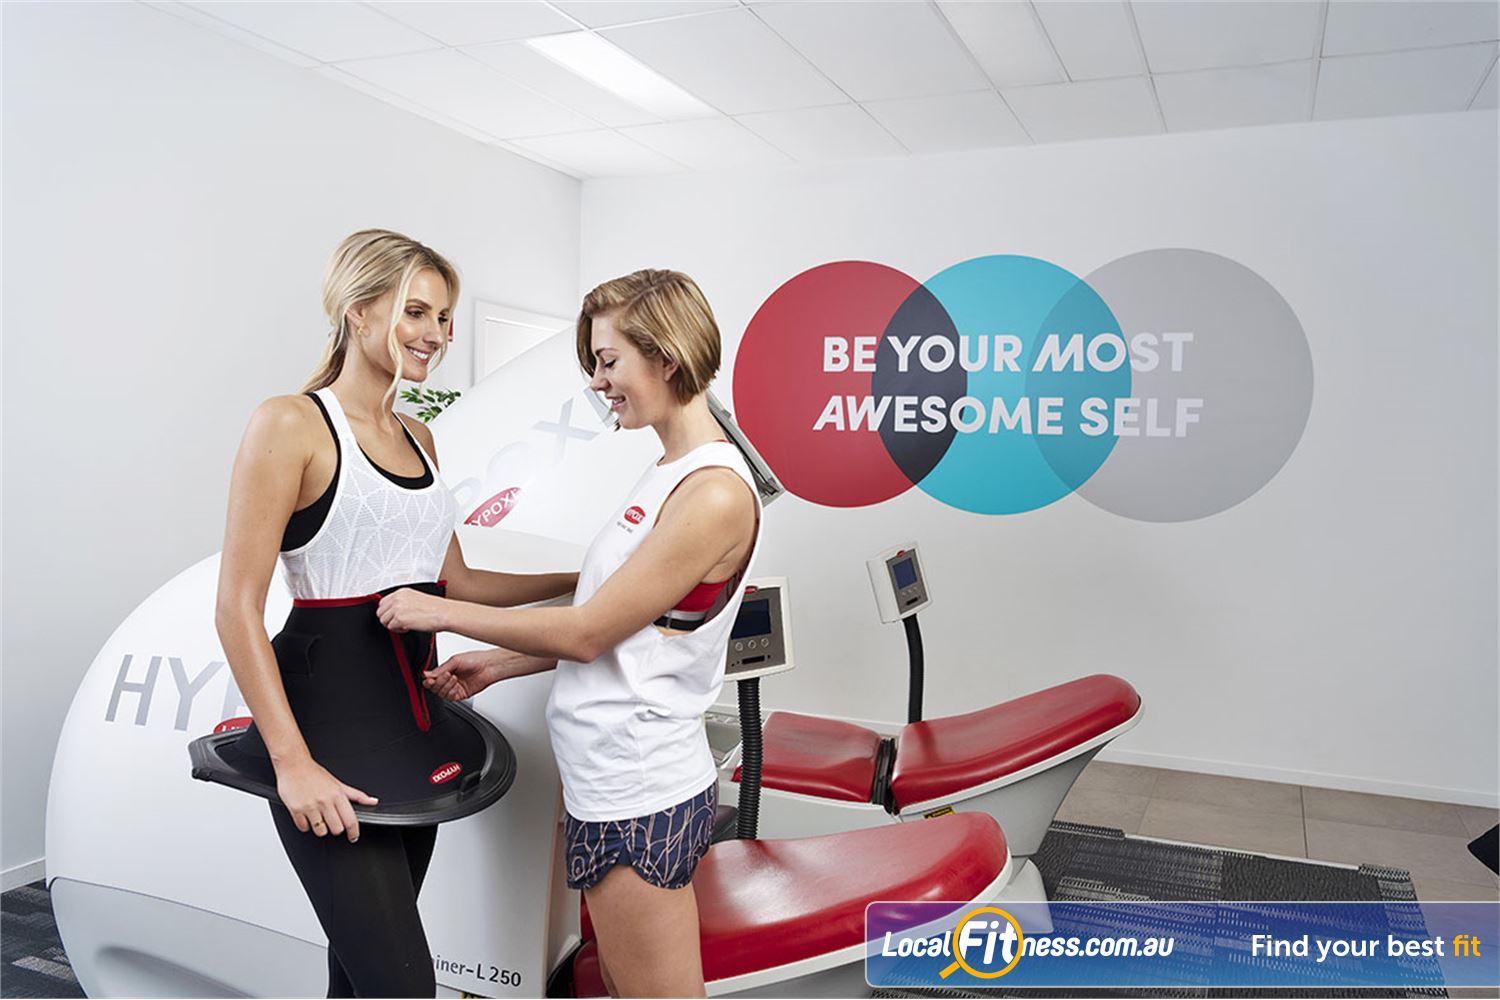 HYPOXI Weight Loss Port Melbourne Average client loses 26cm in first 4 weeks at HYPOXI Port Melbourne.